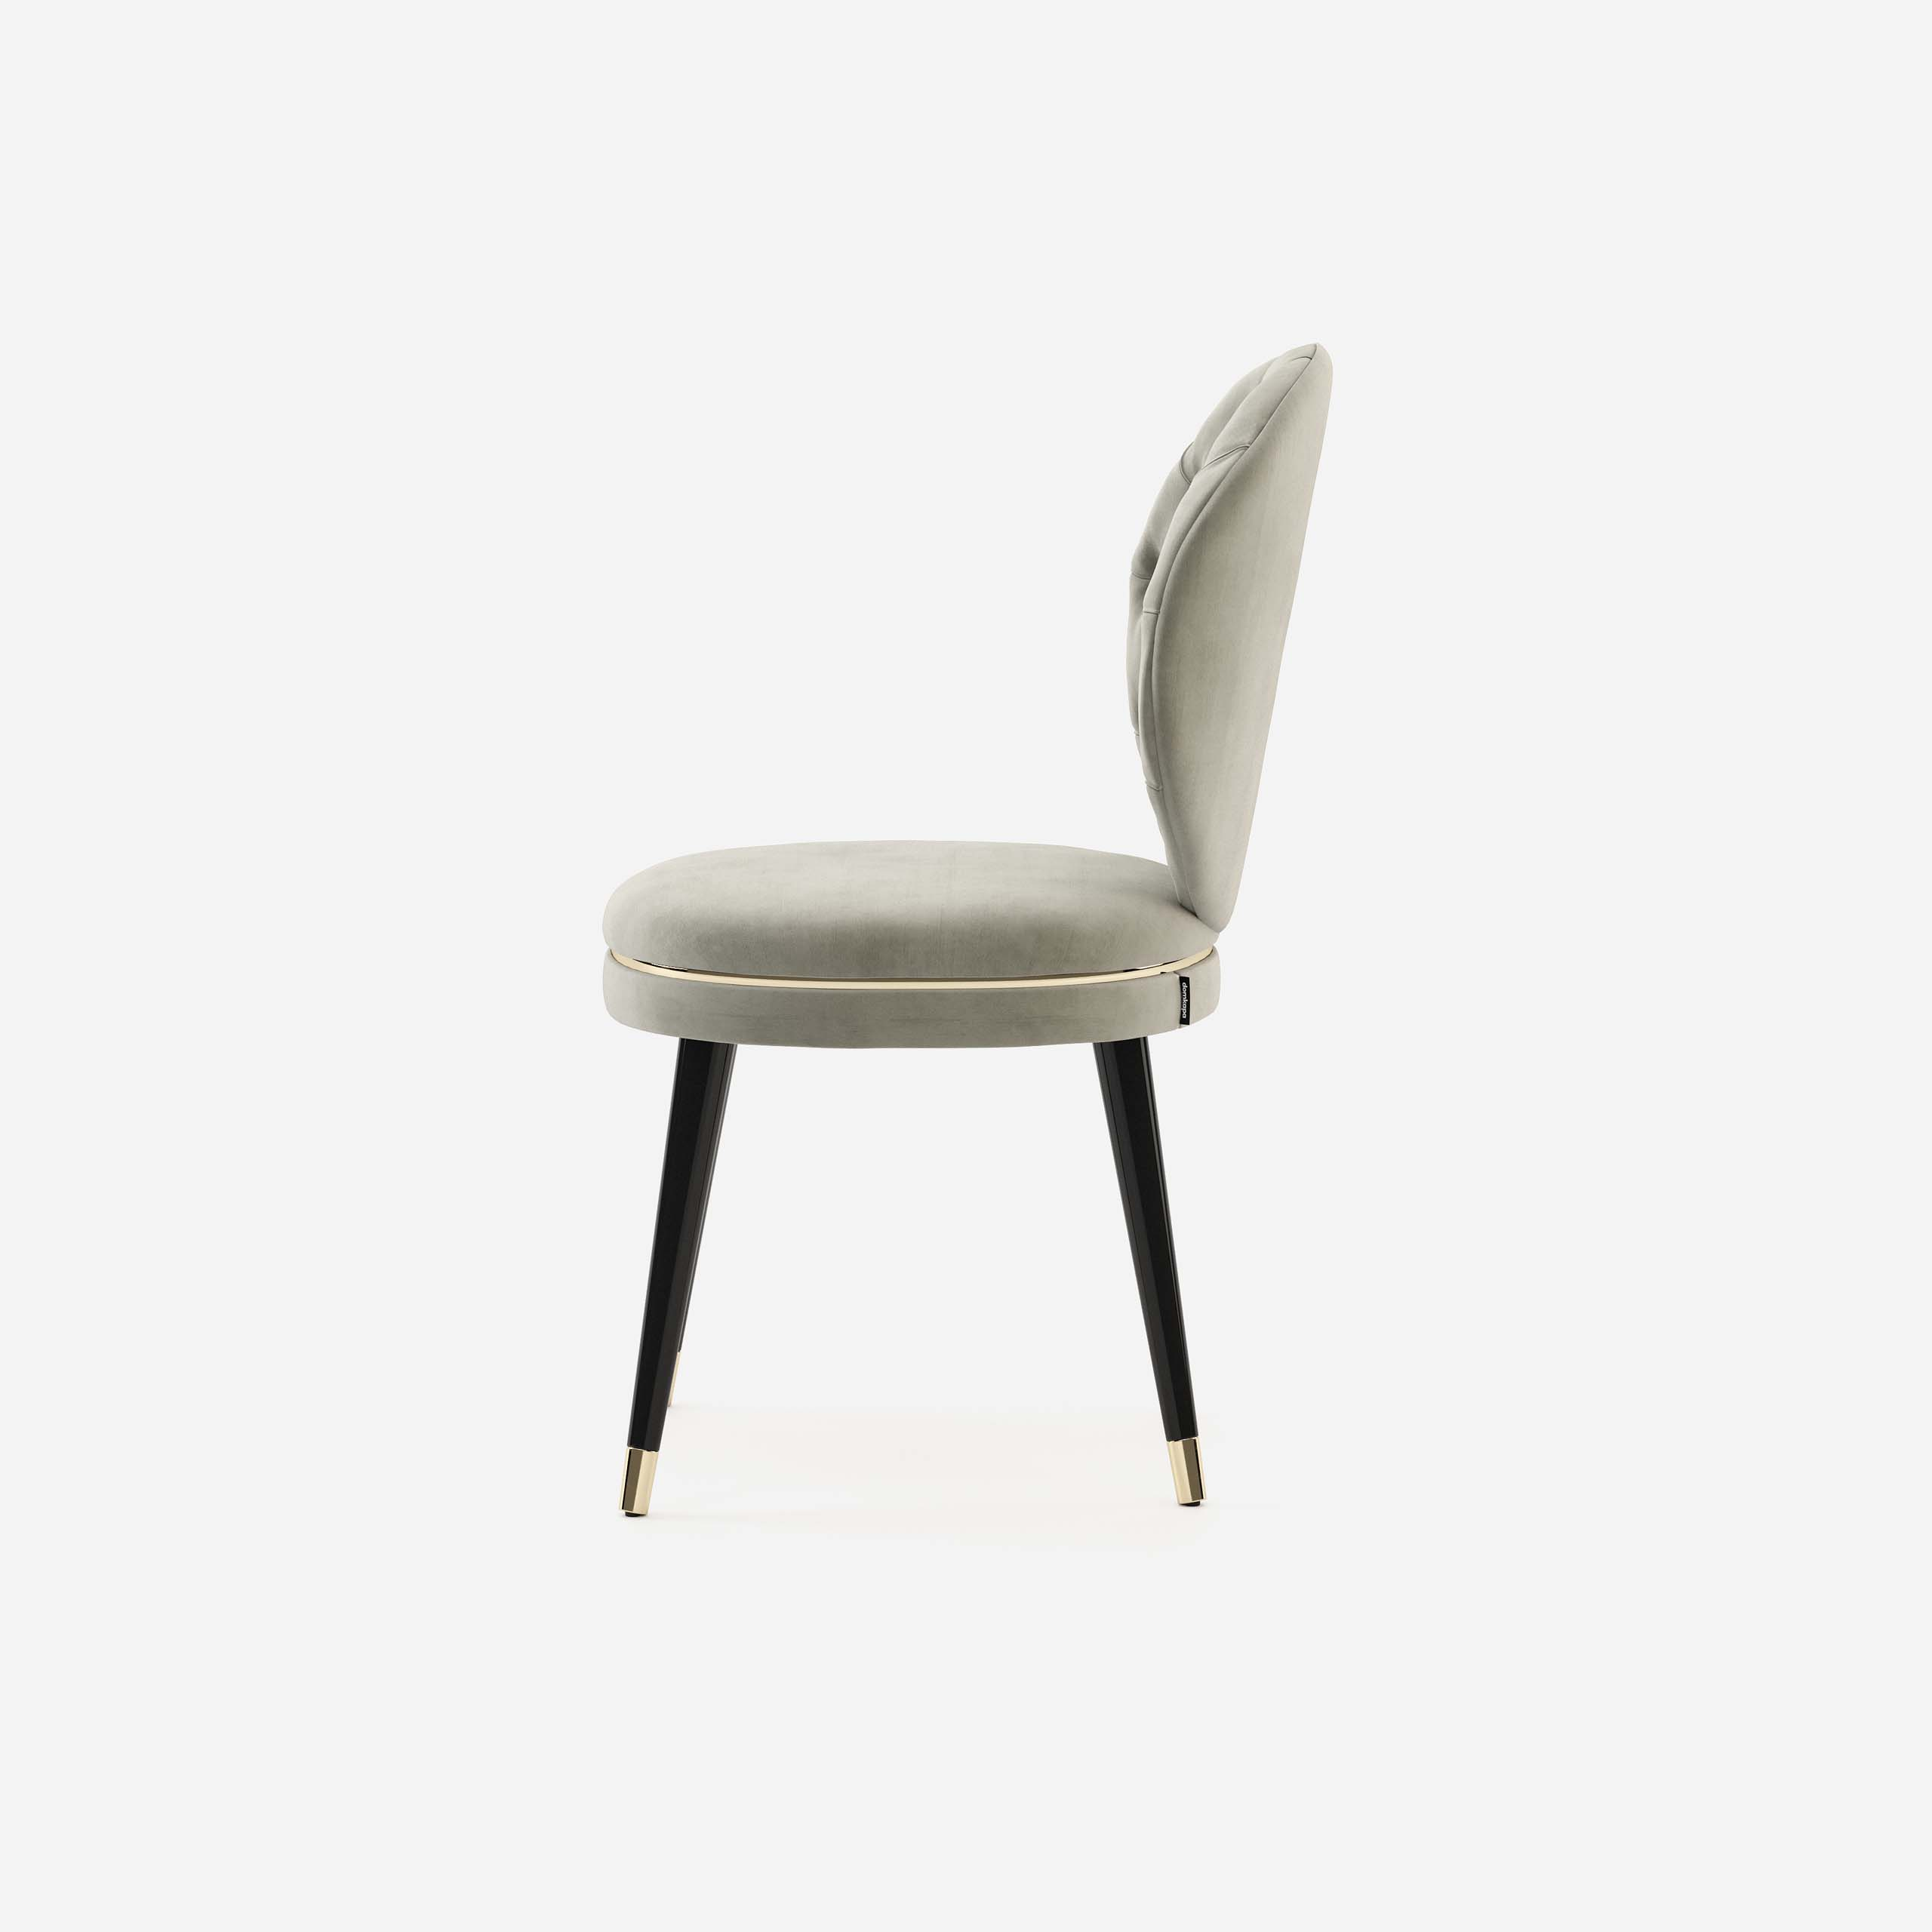 katy-chair-domkapa-new-collection-2021-dining-room-decor-1